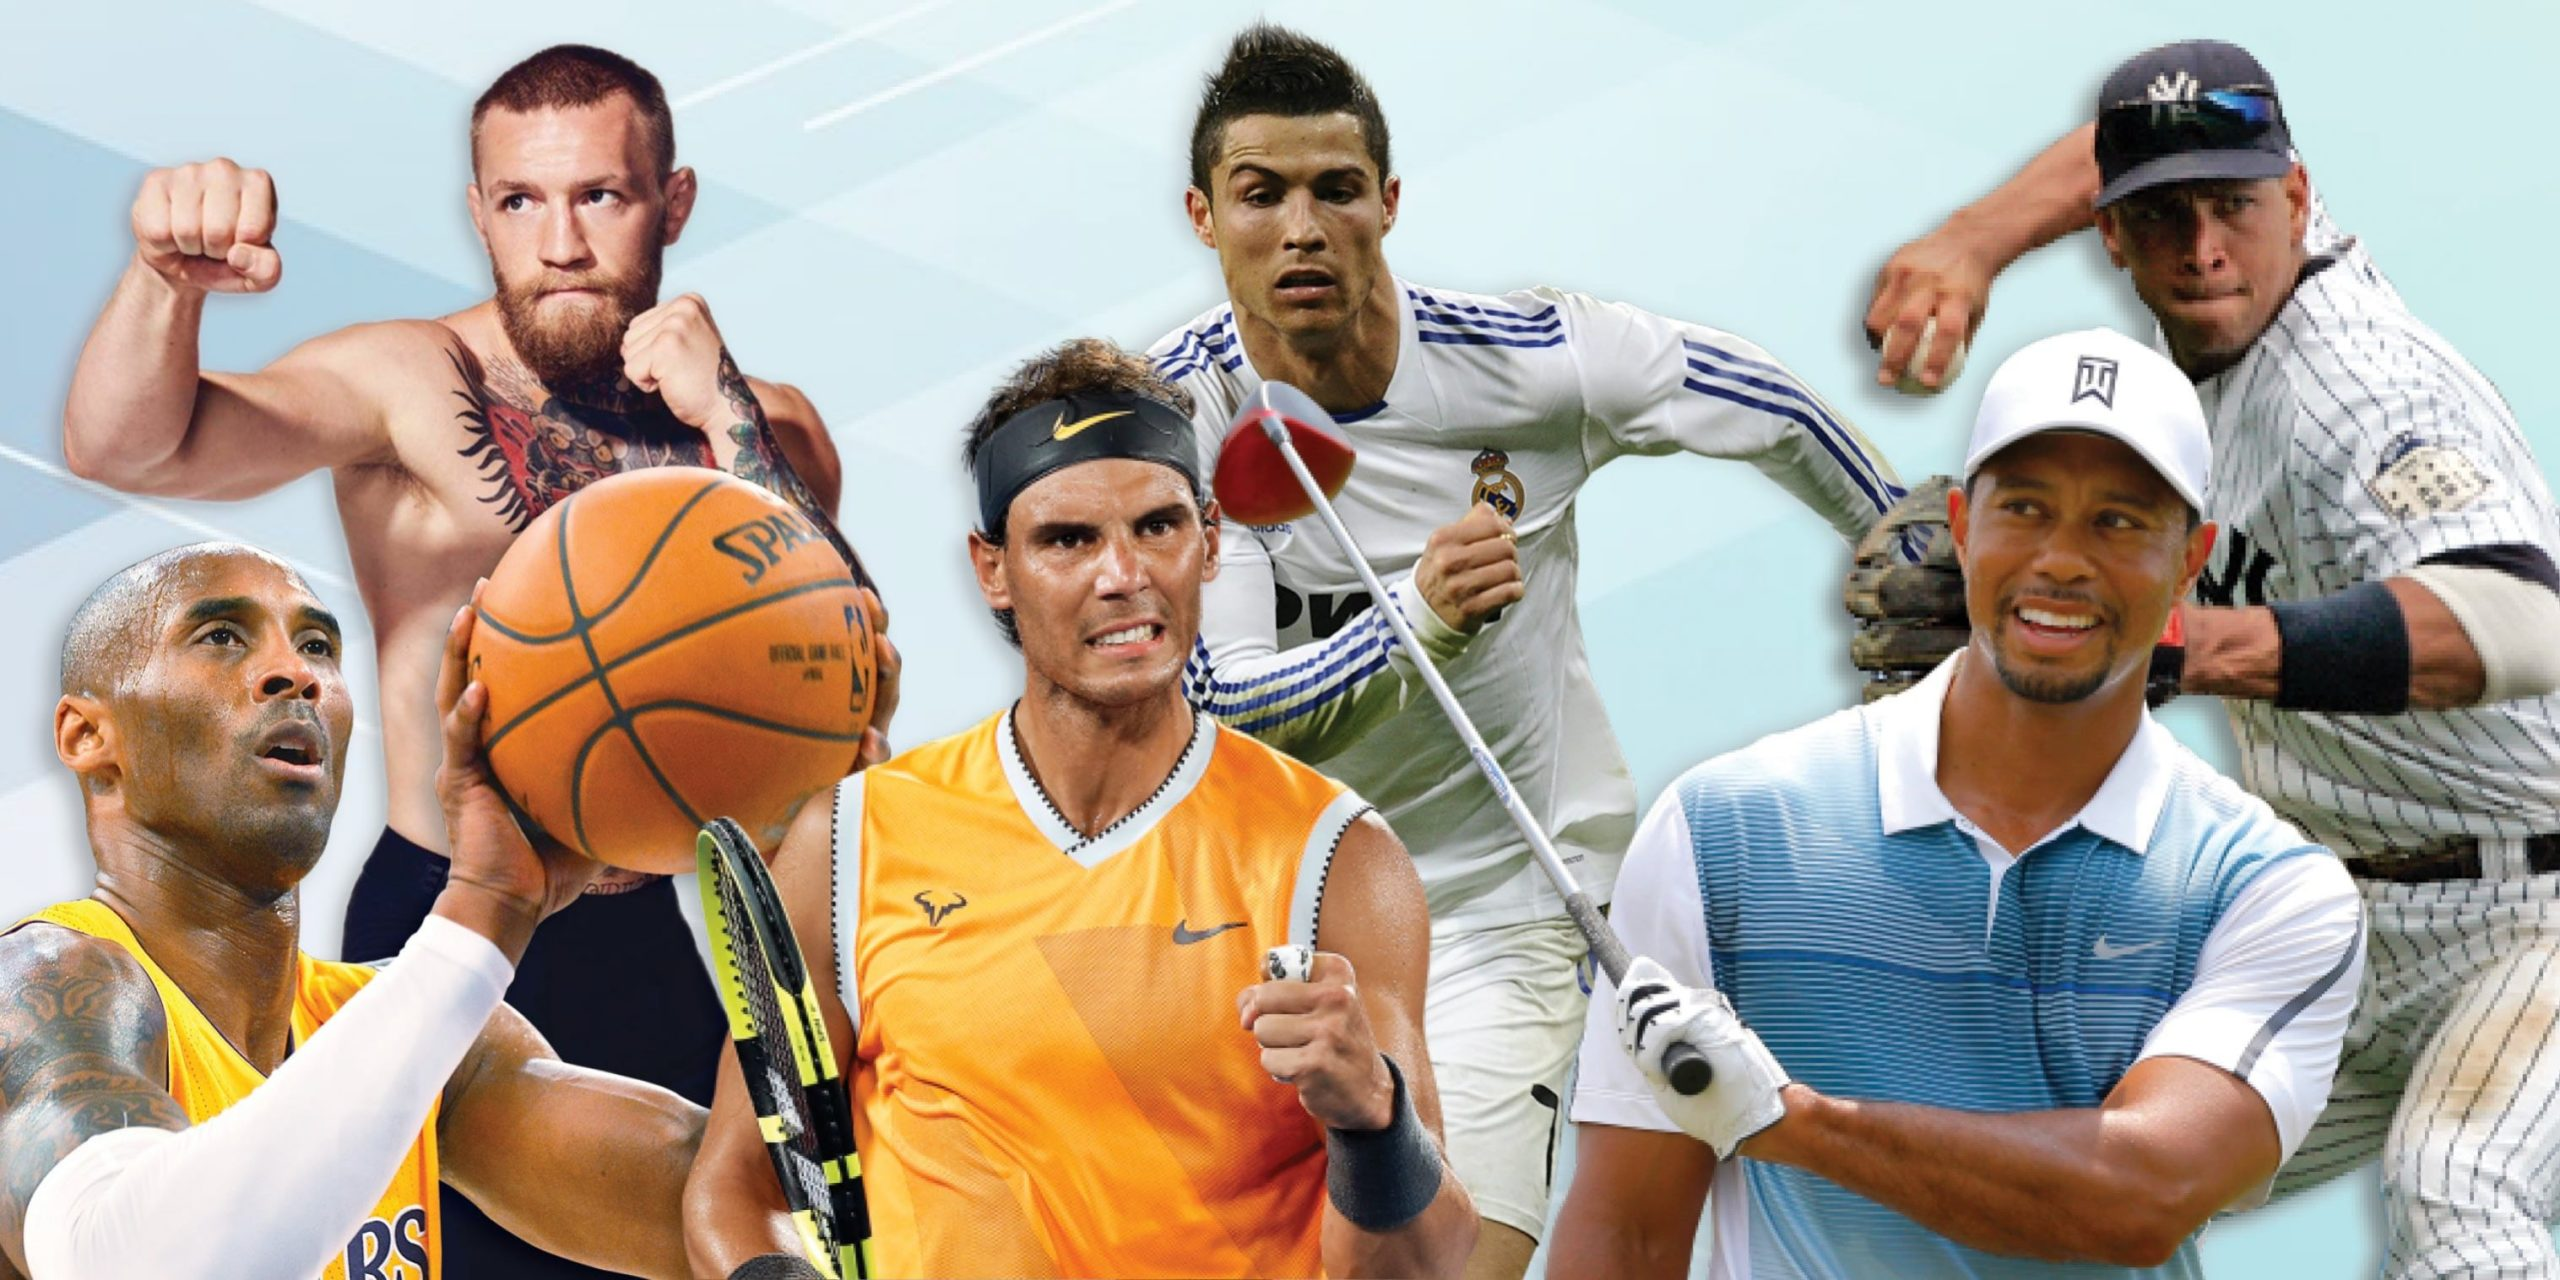 Secrets of the Professional Athletes: The Healing Power of Stem Cells